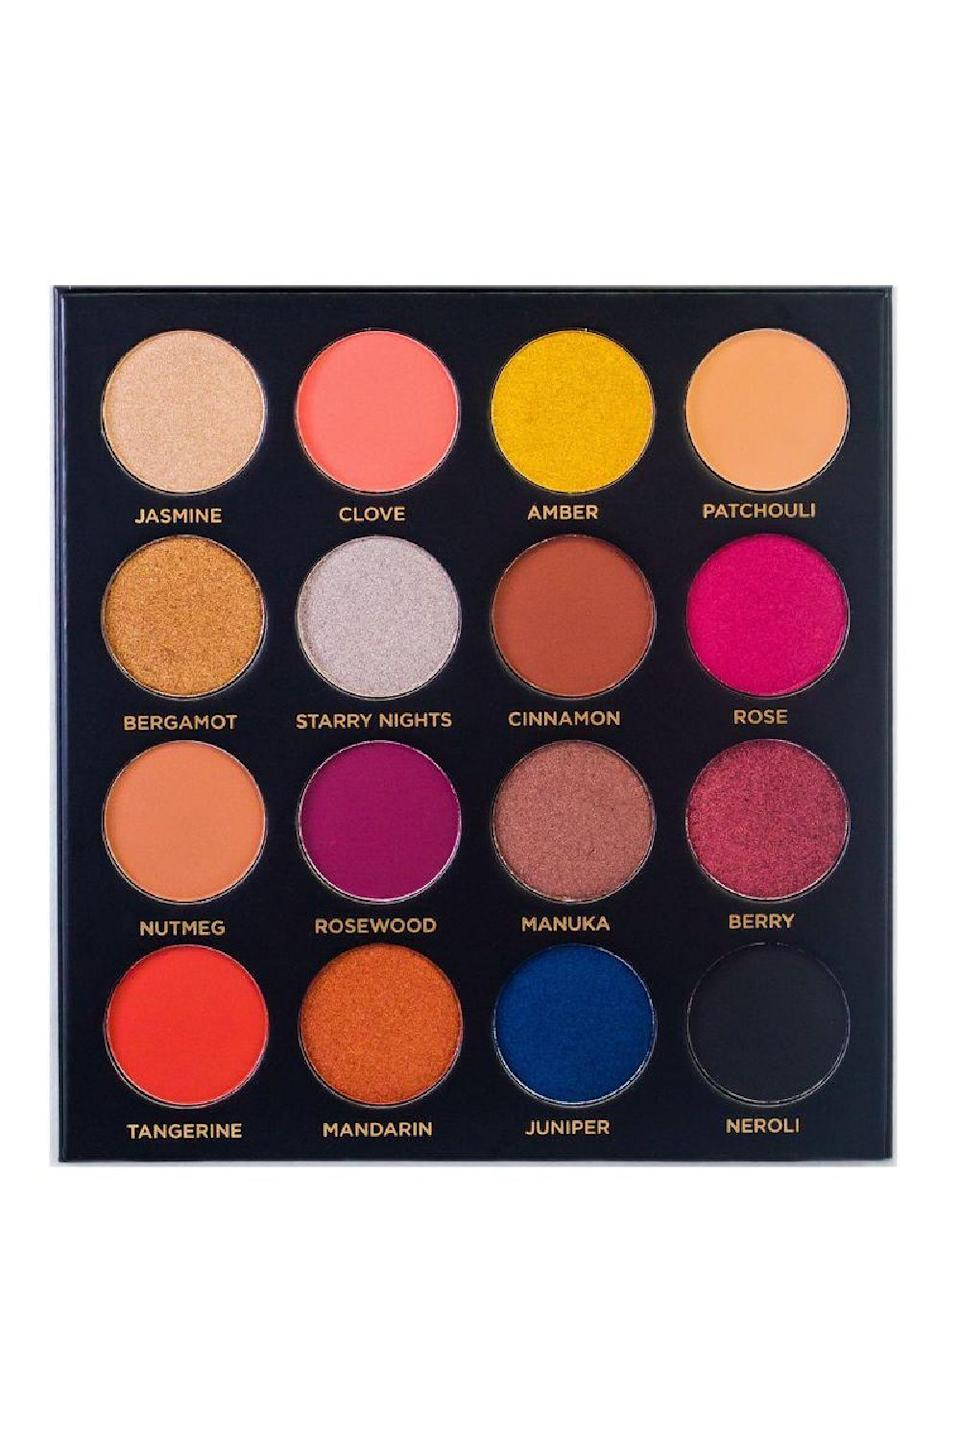 """<p>acebeaute.com</p><p><strong>$38.99</strong></p><p><a href=""""https://www.acebeaute.com/collections/eyeshadow/products/quintessential-eyeshadow-palette"""" rel=""""nofollow noopener"""" target=""""_blank"""" data-ylk=""""slk:Shop Now"""" class=""""link rapid-noclick-resp"""">Shop Now</a></p><p>If you catch yourself putting on the same two or three colors every time you get ready, it's time to shake up that <a href=""""https://www.cosmopolitan.com/style-beauty/beauty/g30187456/cute-makeup-bags/"""" rel=""""nofollow noopener"""" target=""""_blank"""" data-ylk=""""slk:makeup bag"""" class=""""link rapid-noclick-resp"""">makeup bag</a>. (I don't mean that literally. Don't break your precious pressed shadows, pls.) This <strong>array of coral, silver, hot pink, and royal blue colors in matte, satin, and metallic finishes</strong> will remind you how fun makeup can be—and that it's probs time to find a new signature look, just sayin'.<br></p>"""